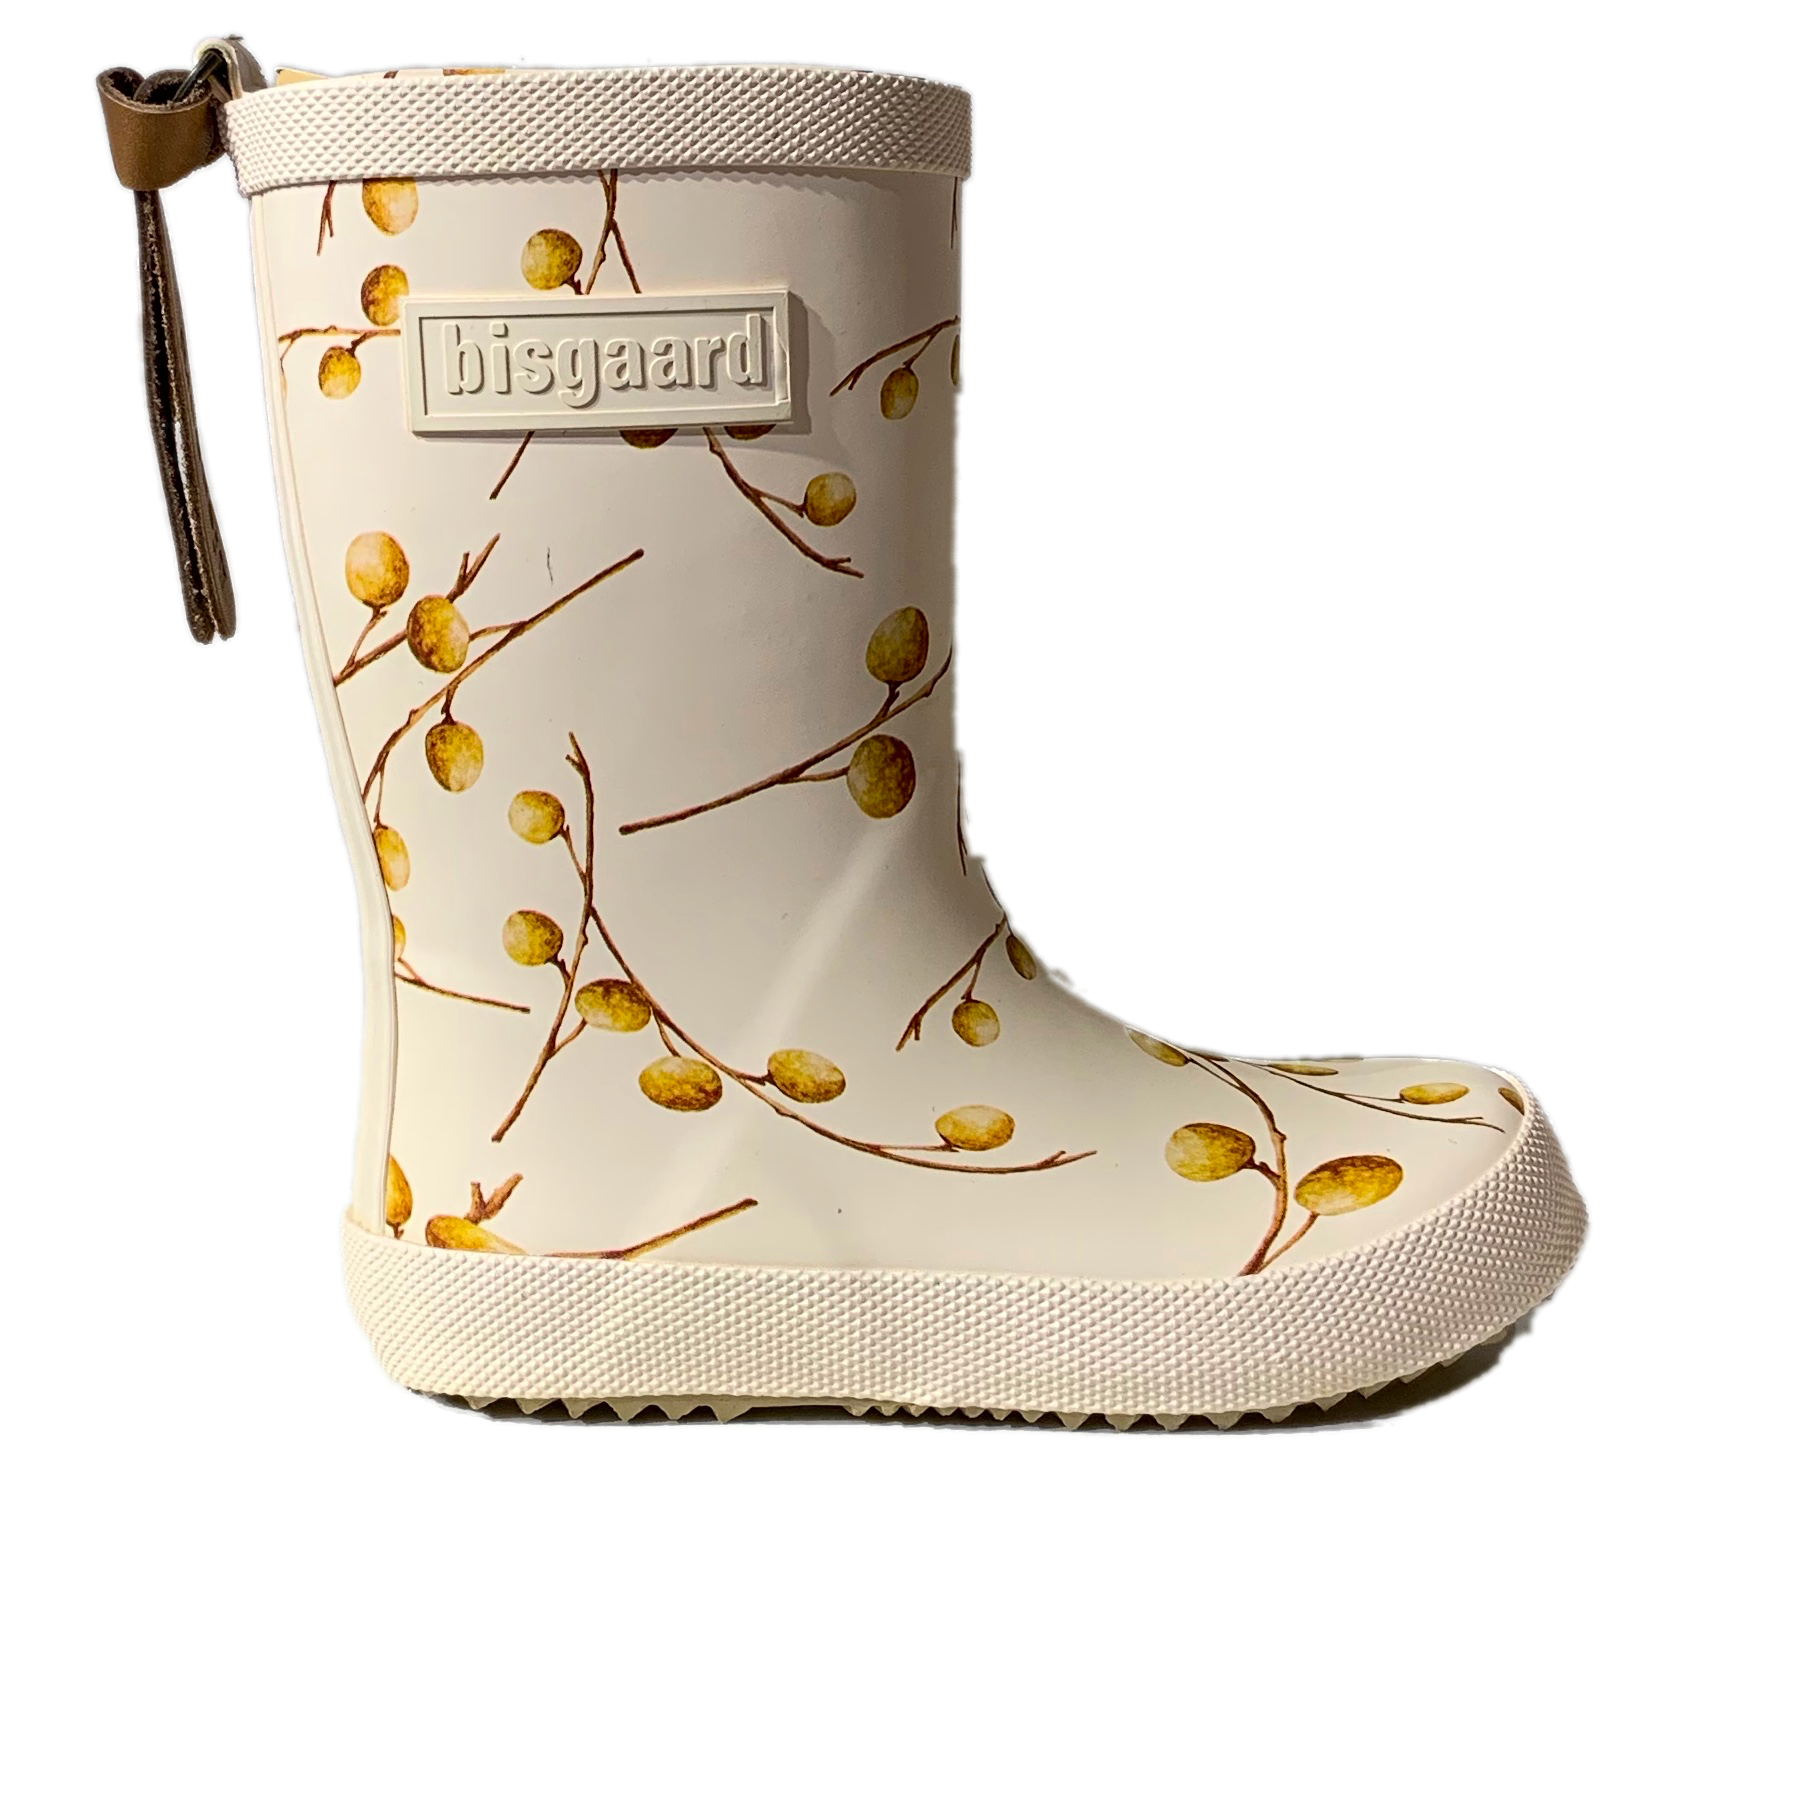 Bisgaard Rain boot longan fruit